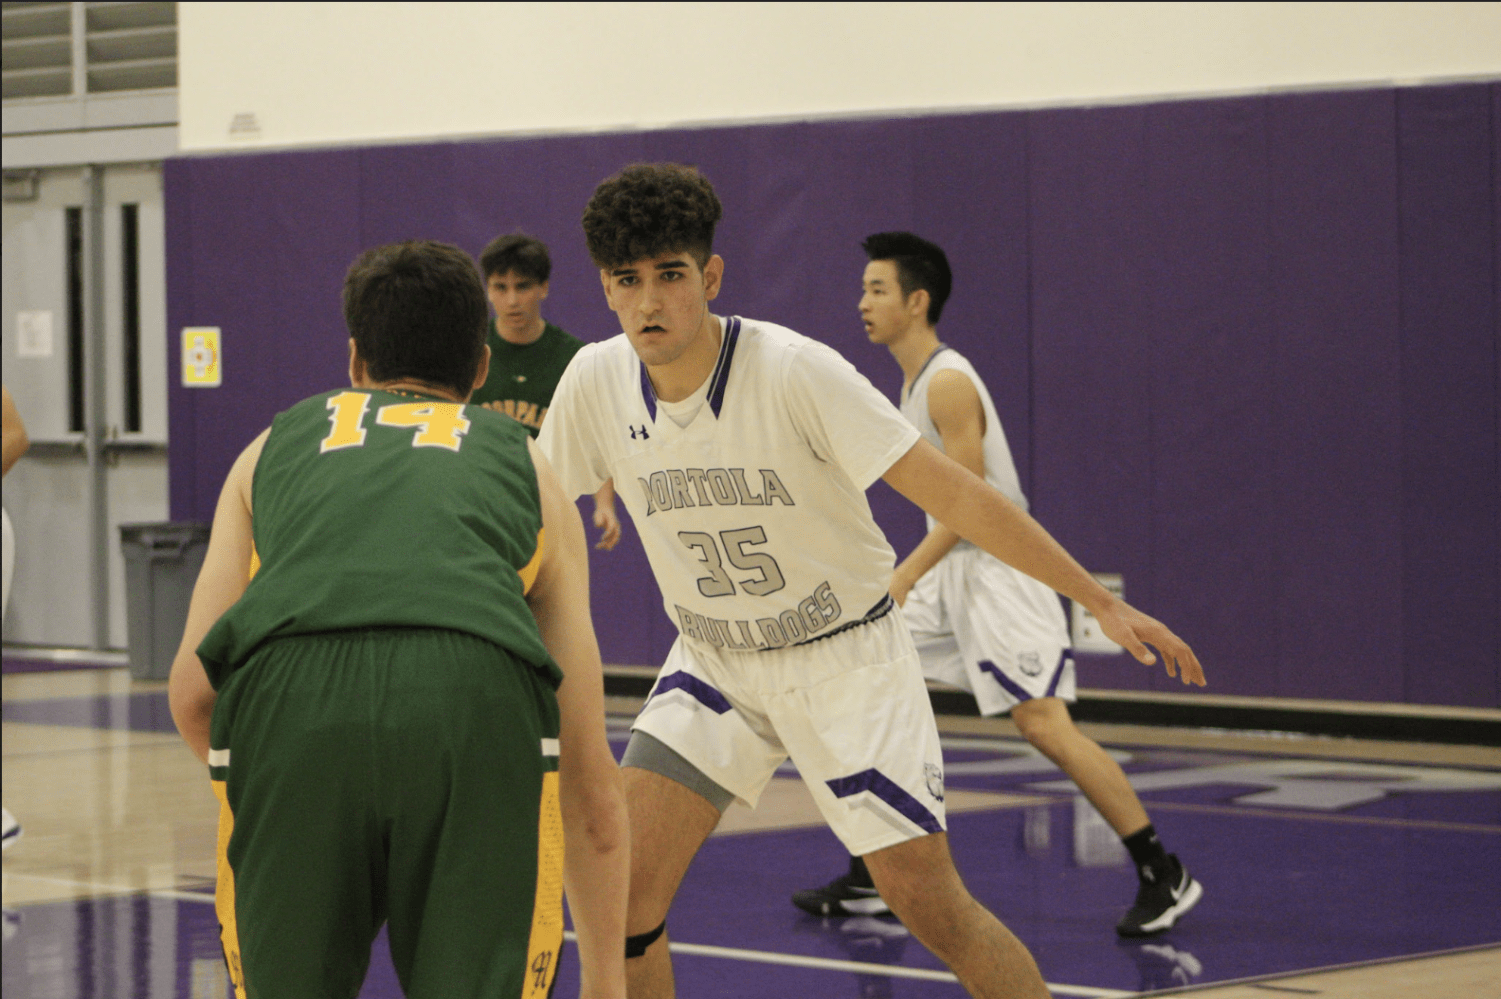 Power forward and junior Mohsen Hashemi plays man-to-man defense and guards against Moorpark High's forward at the second round of CIF on Feb. 12. Throughout the season, the team continued to improve on their defensive playing, although they faced difficulty against strong players from Moorpark High.